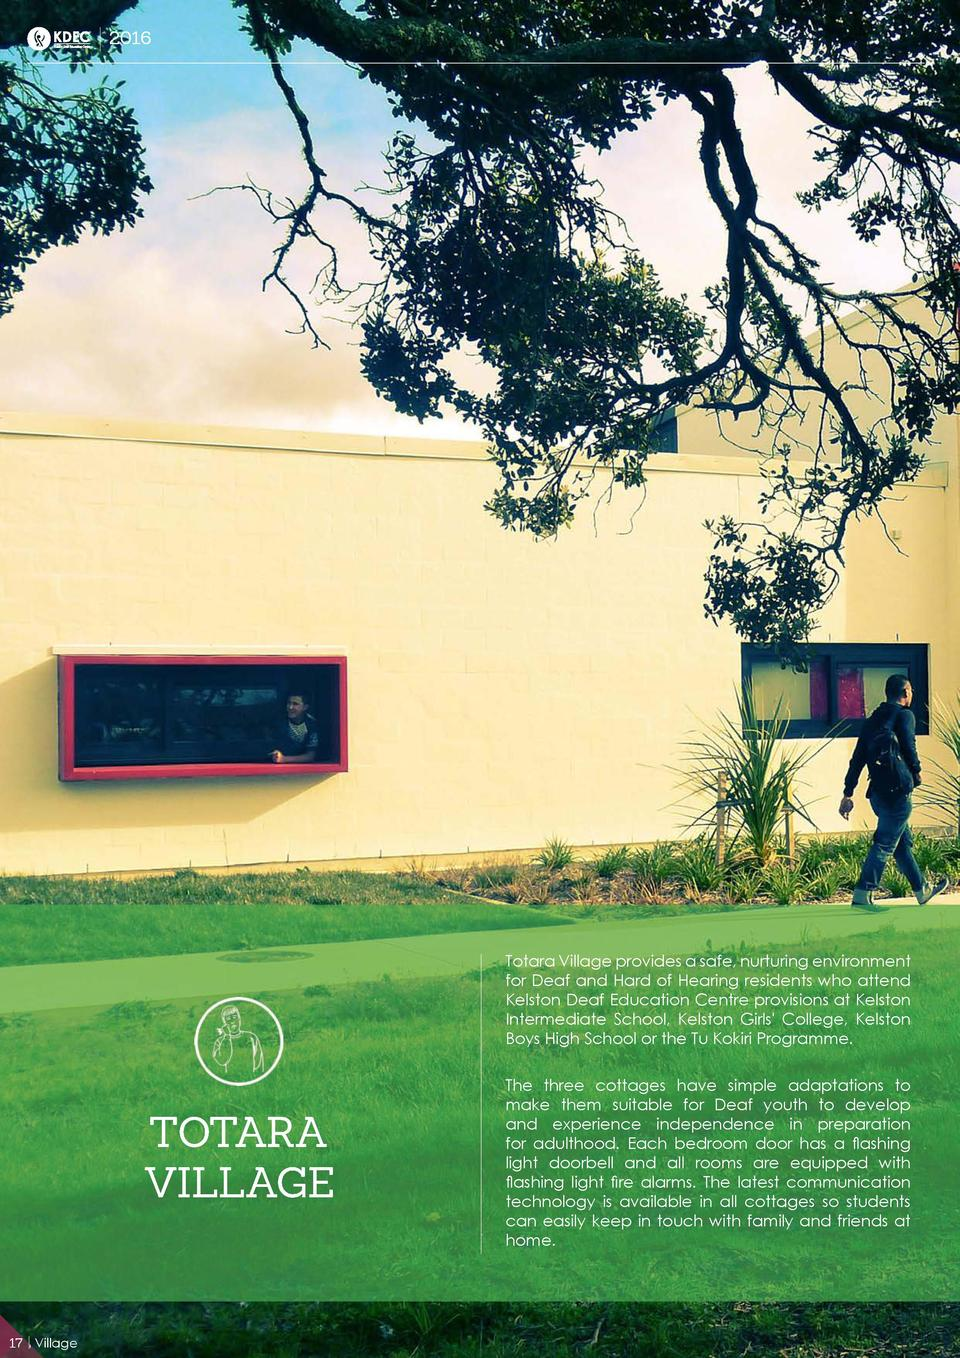 2016  Totara Village provides a safe, nurturing environment for Deaf and Hard of Hearing residents who attend Kelston Deaf...